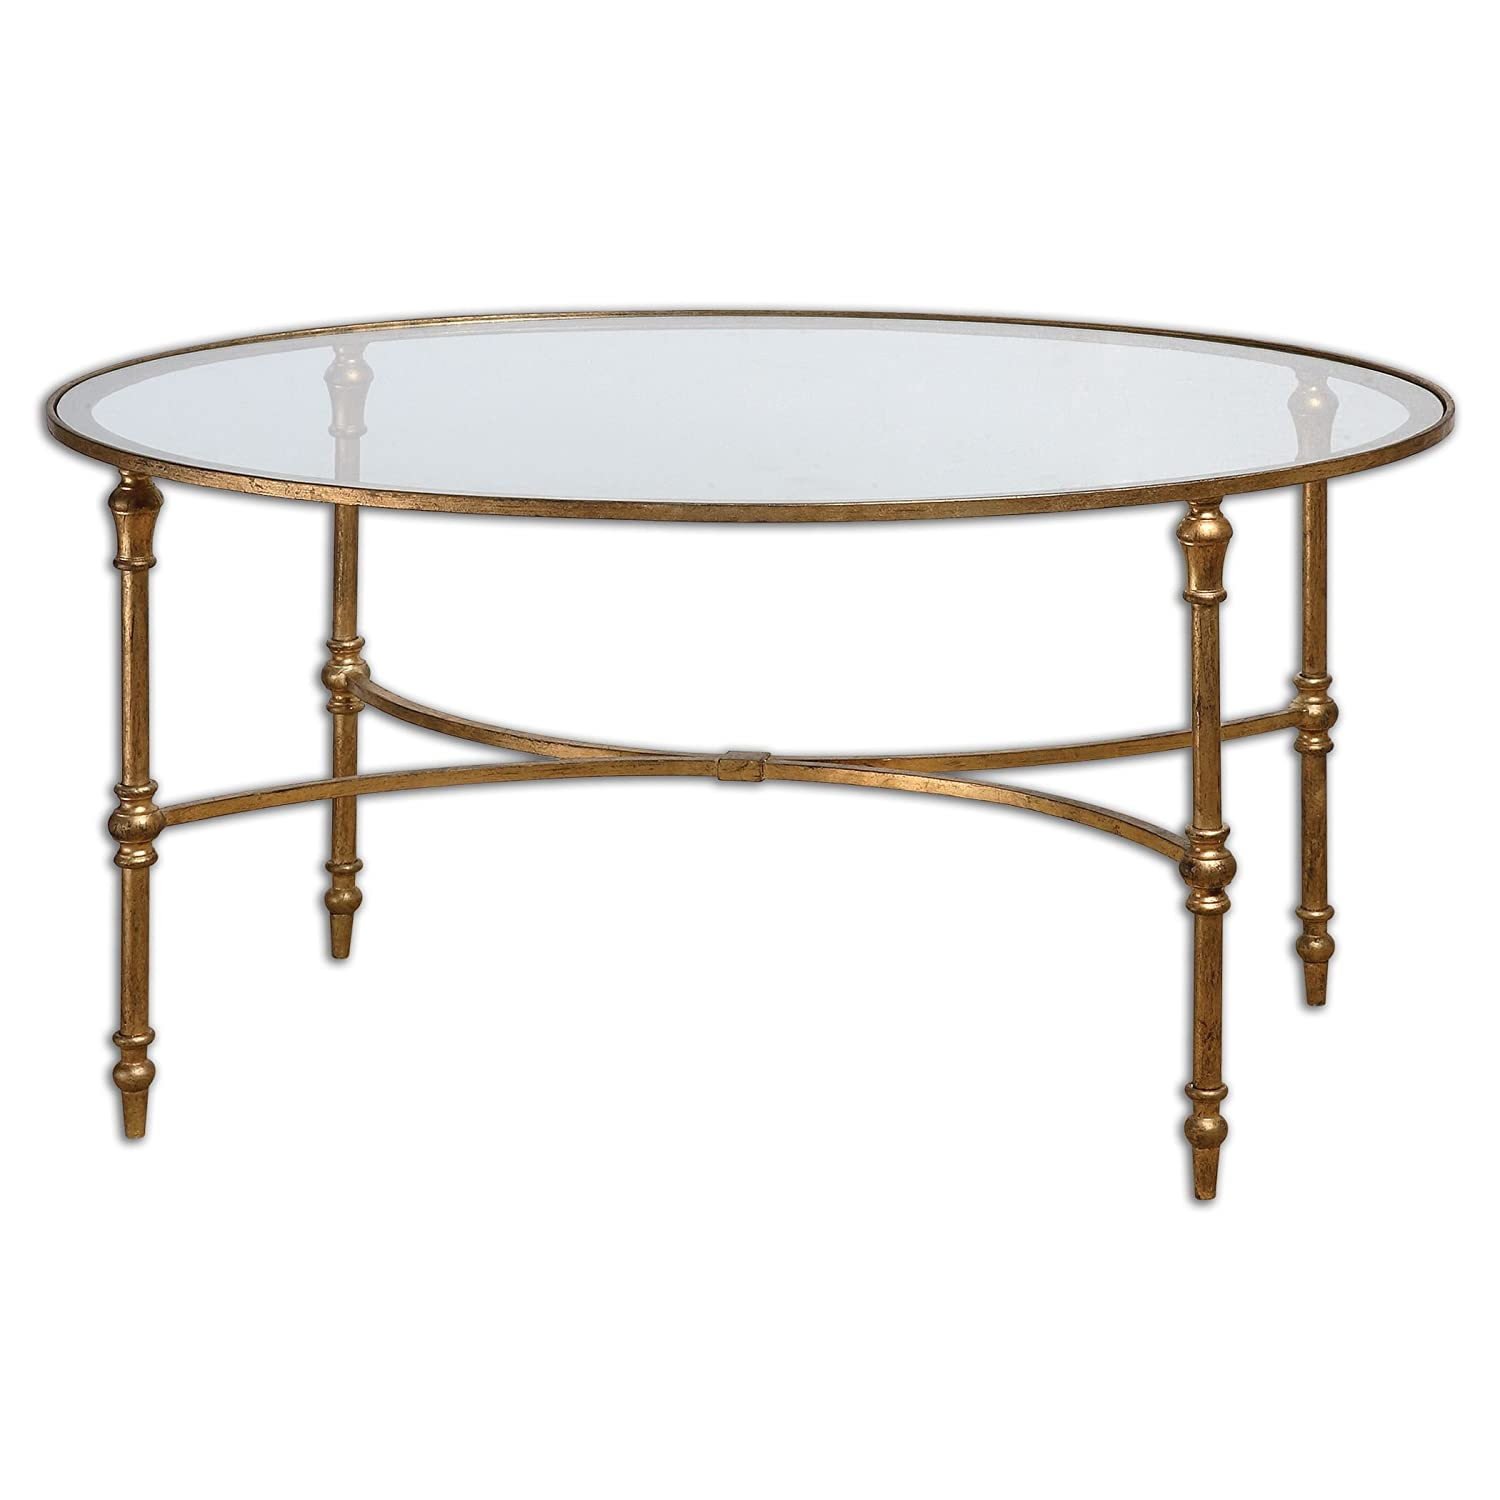 Iron Coffee Tables Amazoncom Elegant Oval Gold Iron Coffee Table Kitchen Dining